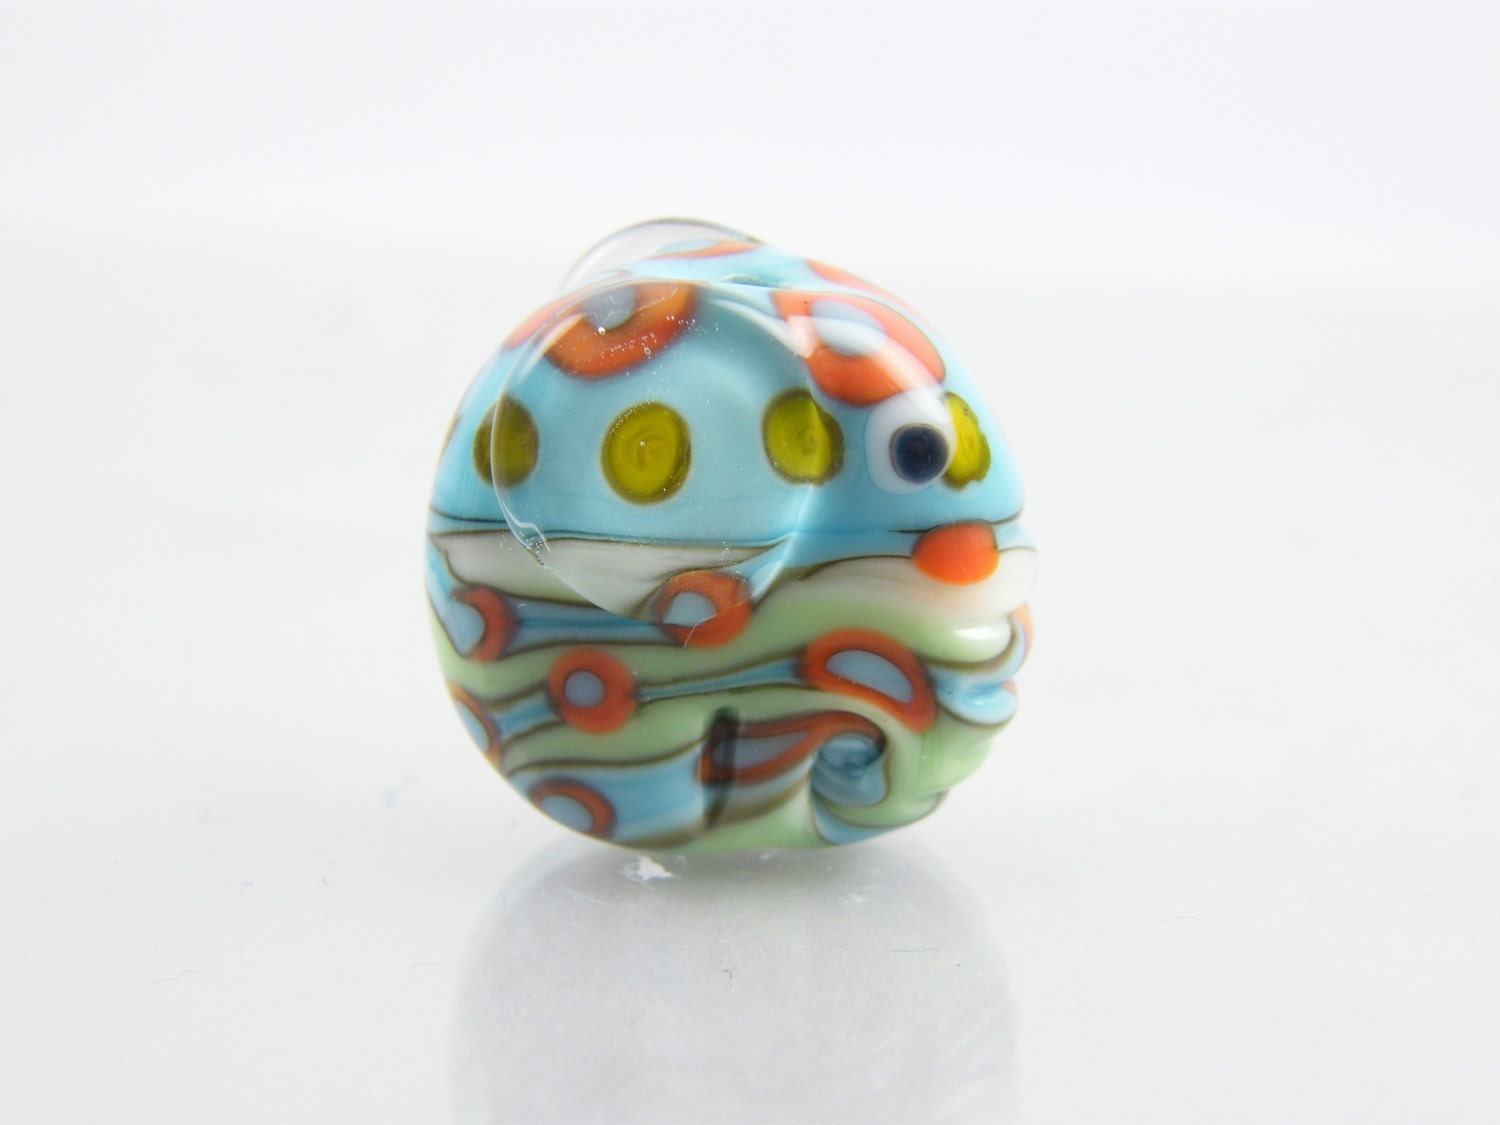 This pretty little Ellie bead measures 20mm x 21mm and has been wound on a 2.4mm mandrel